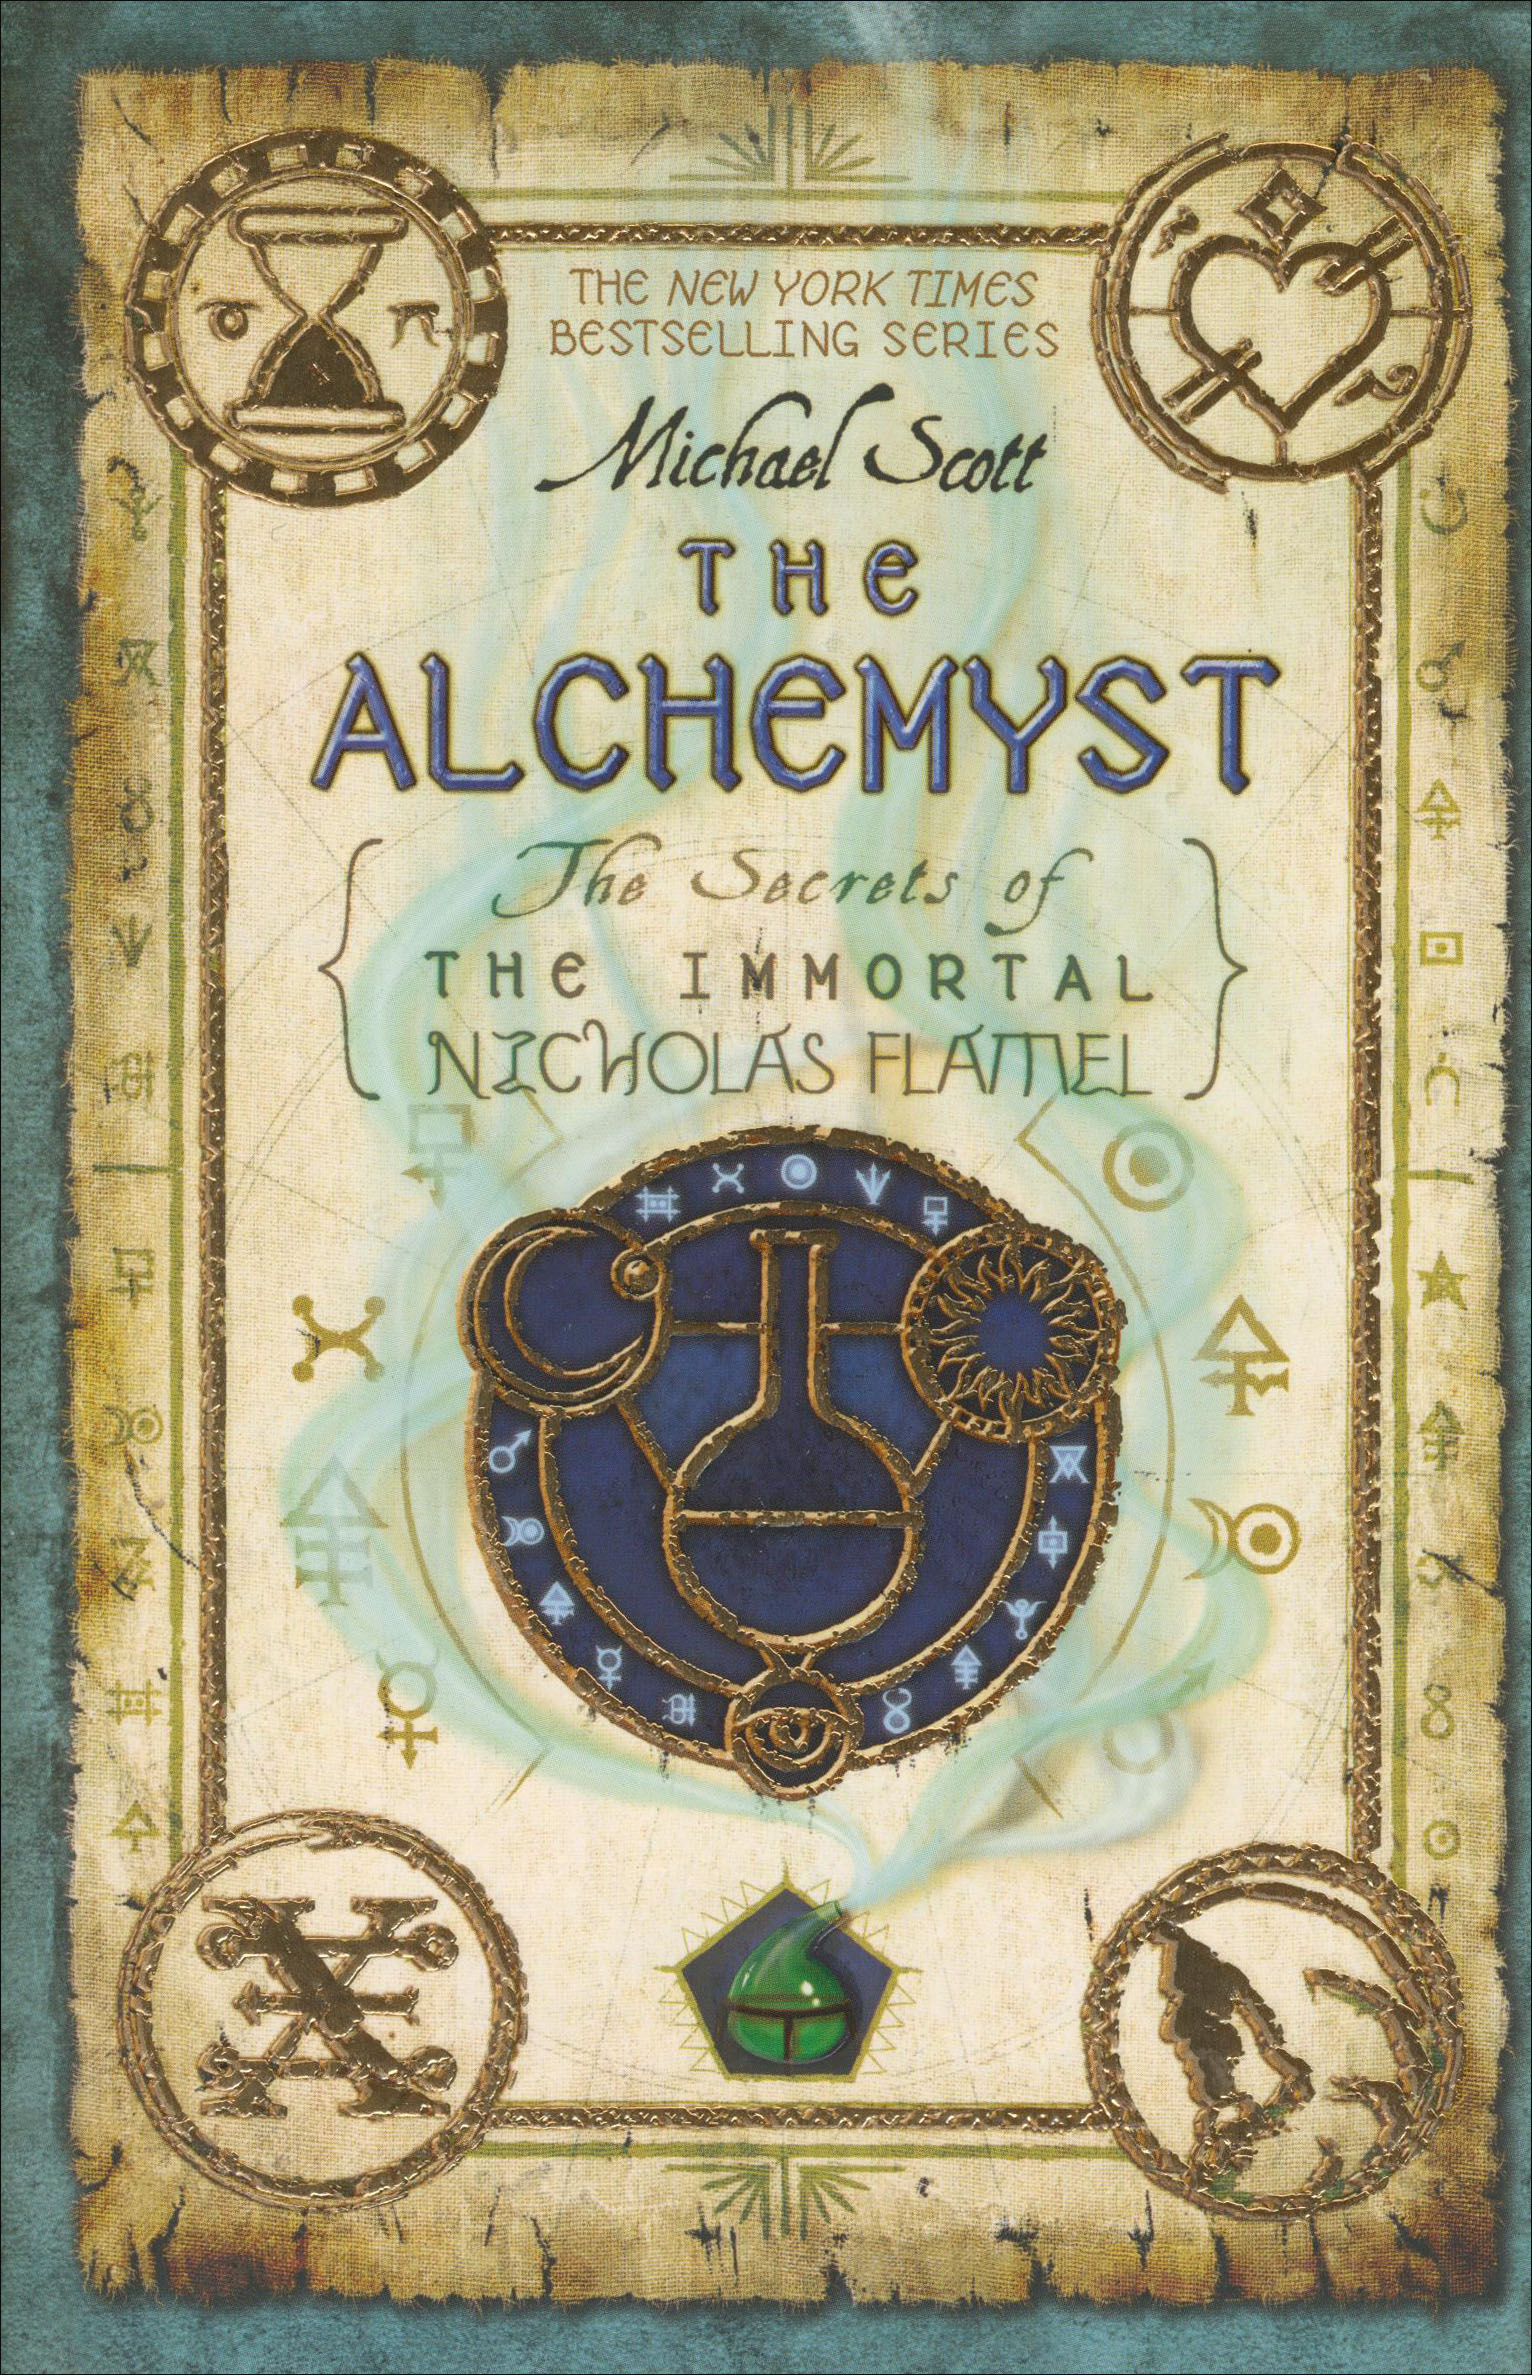 The Alchemyst Paperback Book (890L)